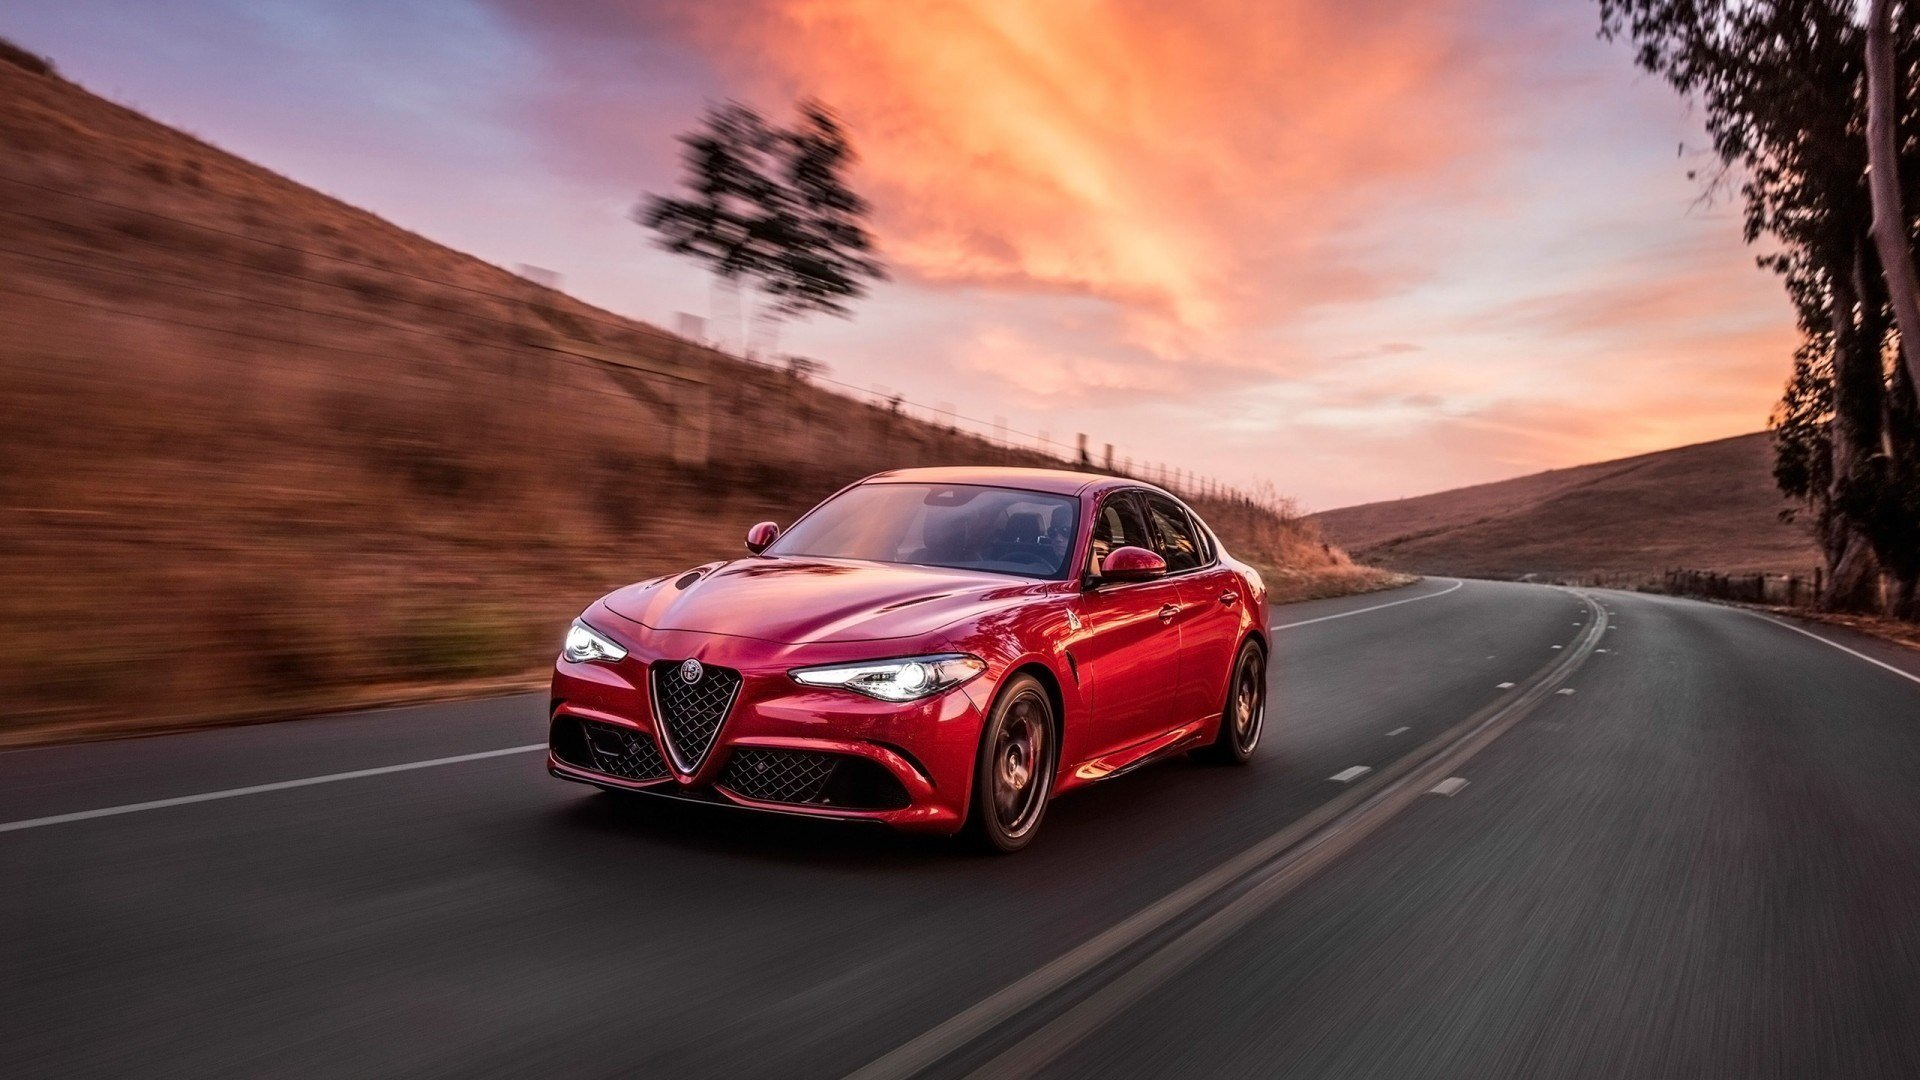 Latest 2017 Alfa Romeo Giulia Quadrifoglio Wallpaper Hd Car Free Download